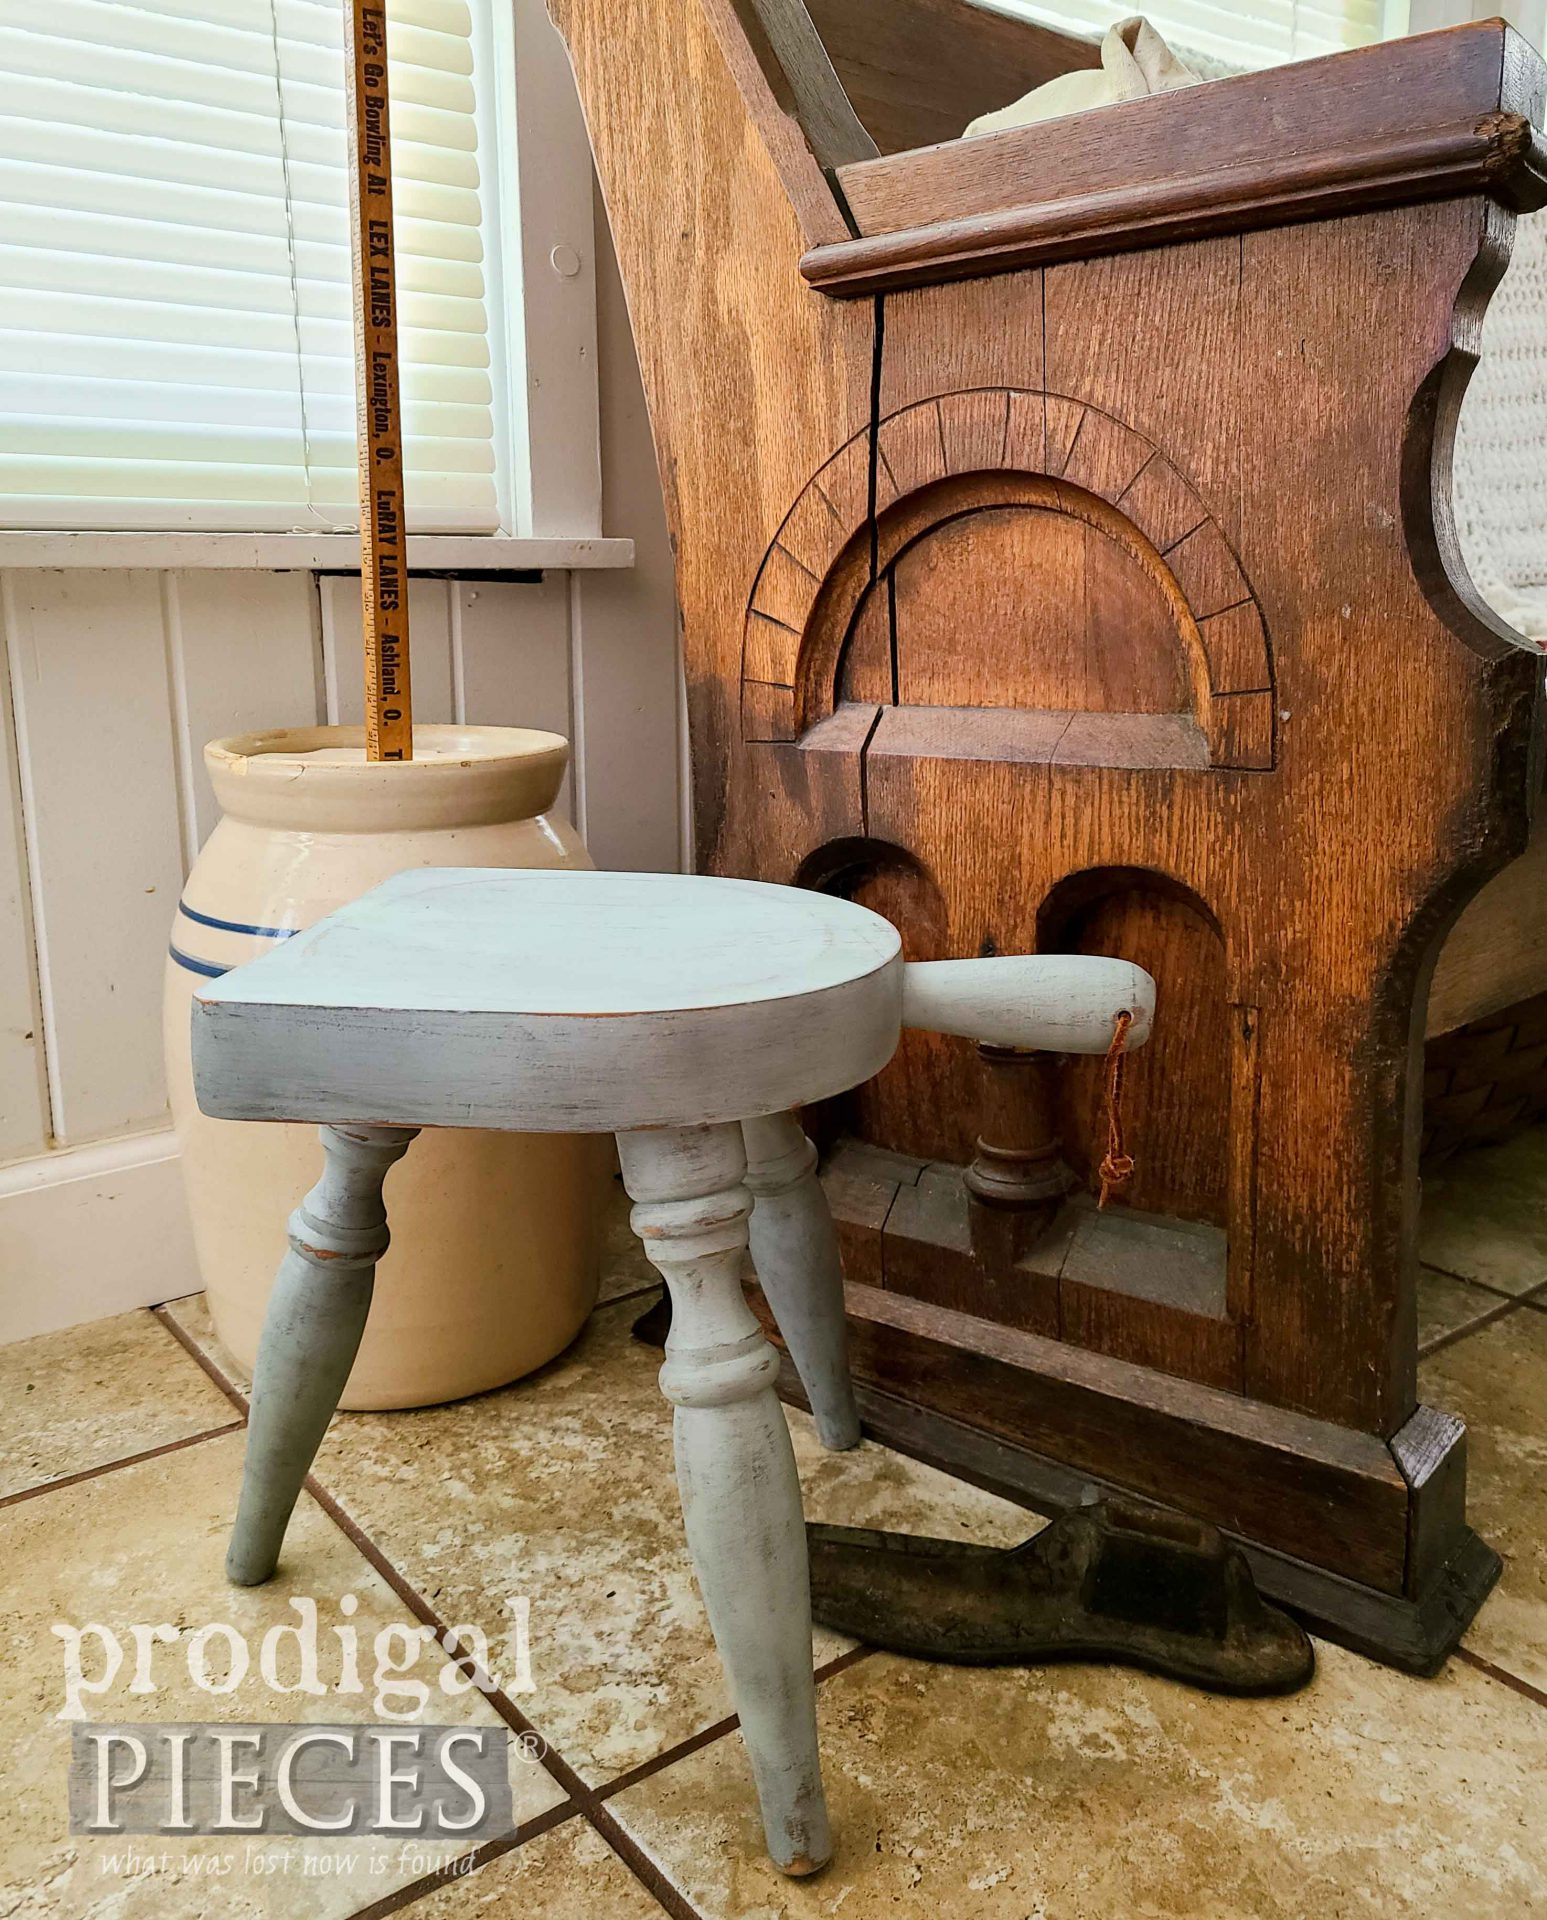 Vintage Farmhouse Milking Stool in Chippy Green Paint by Prodigal Pieces | prodigalpieces.com #prodigalpieces #farmhouse #home #homedecor